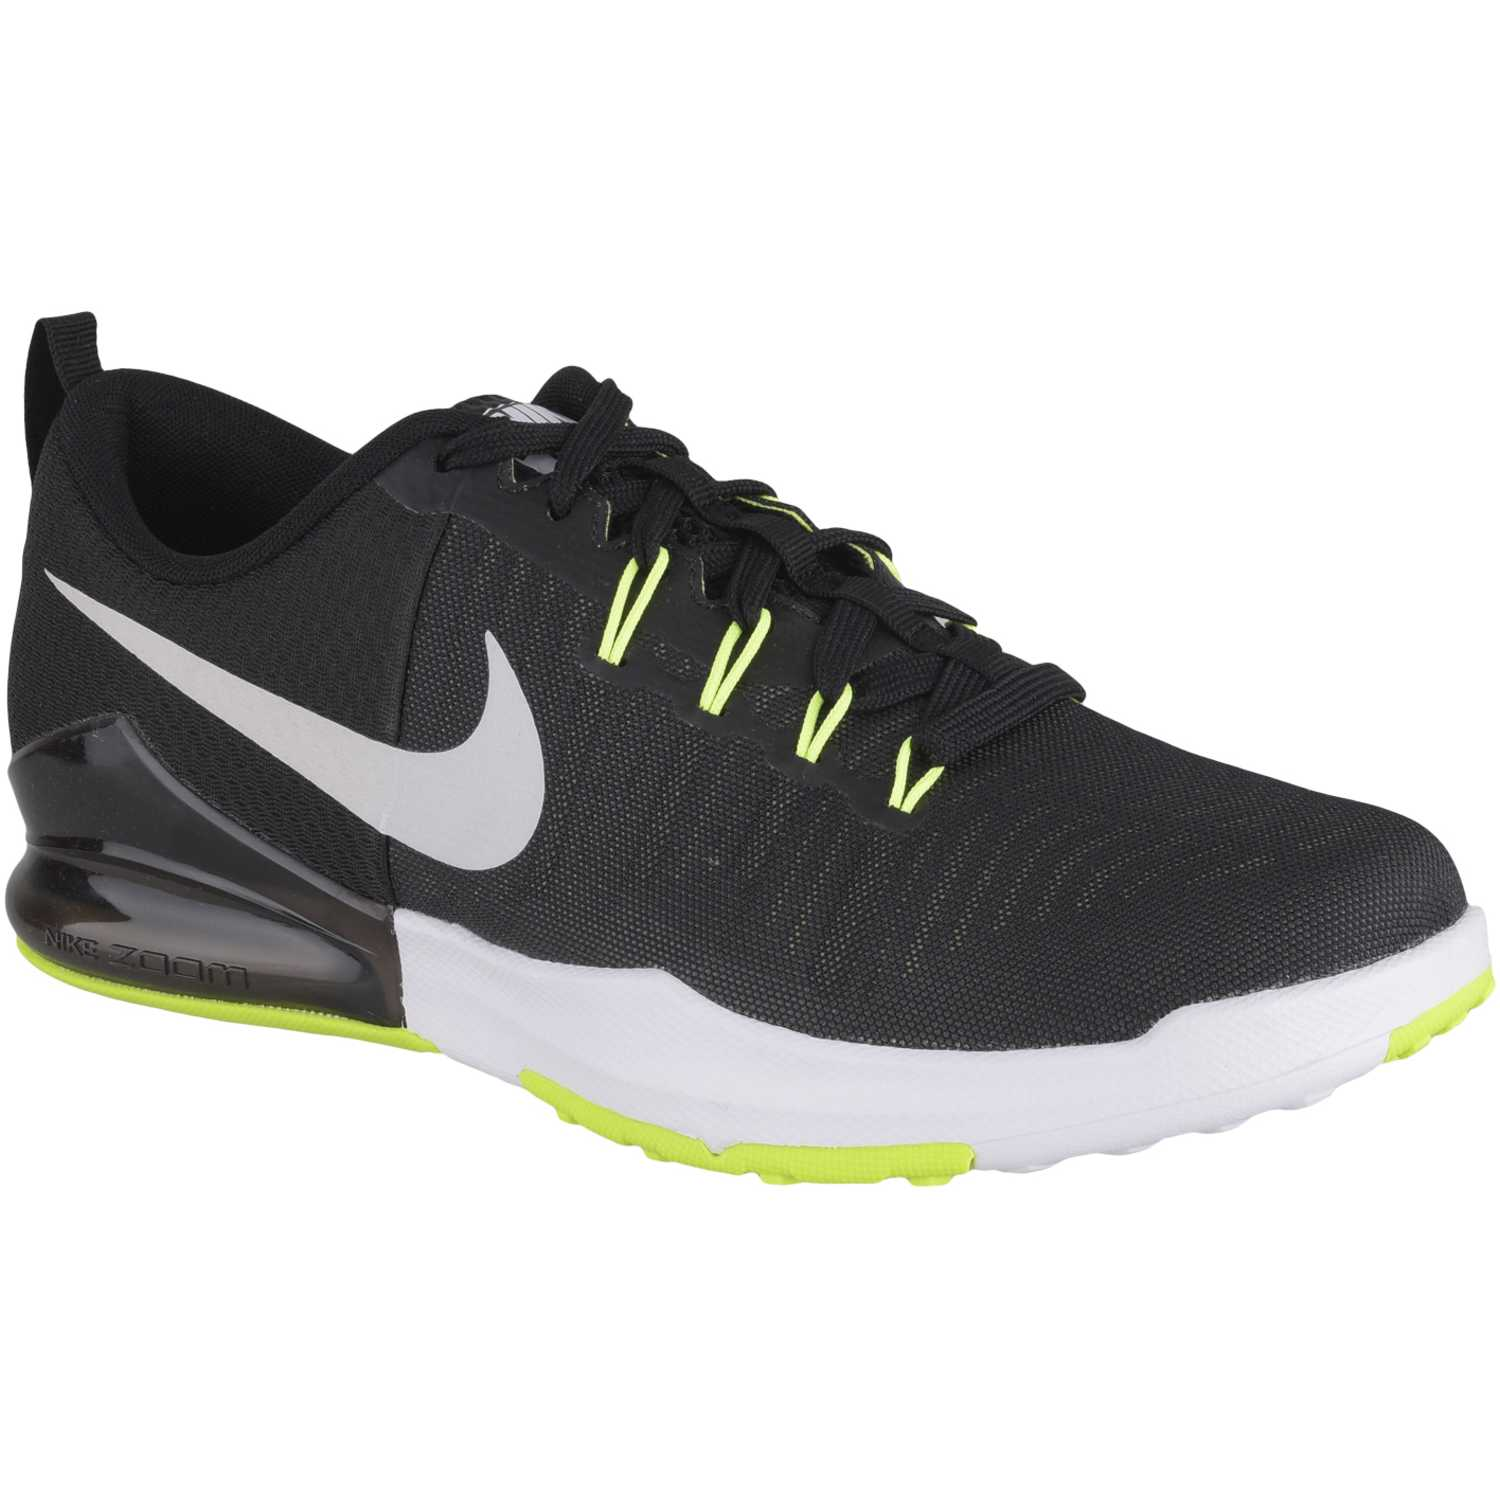 adb06f66bbf1a Zapatilla de Hombre Nike Negro   blanco zoom train action ...